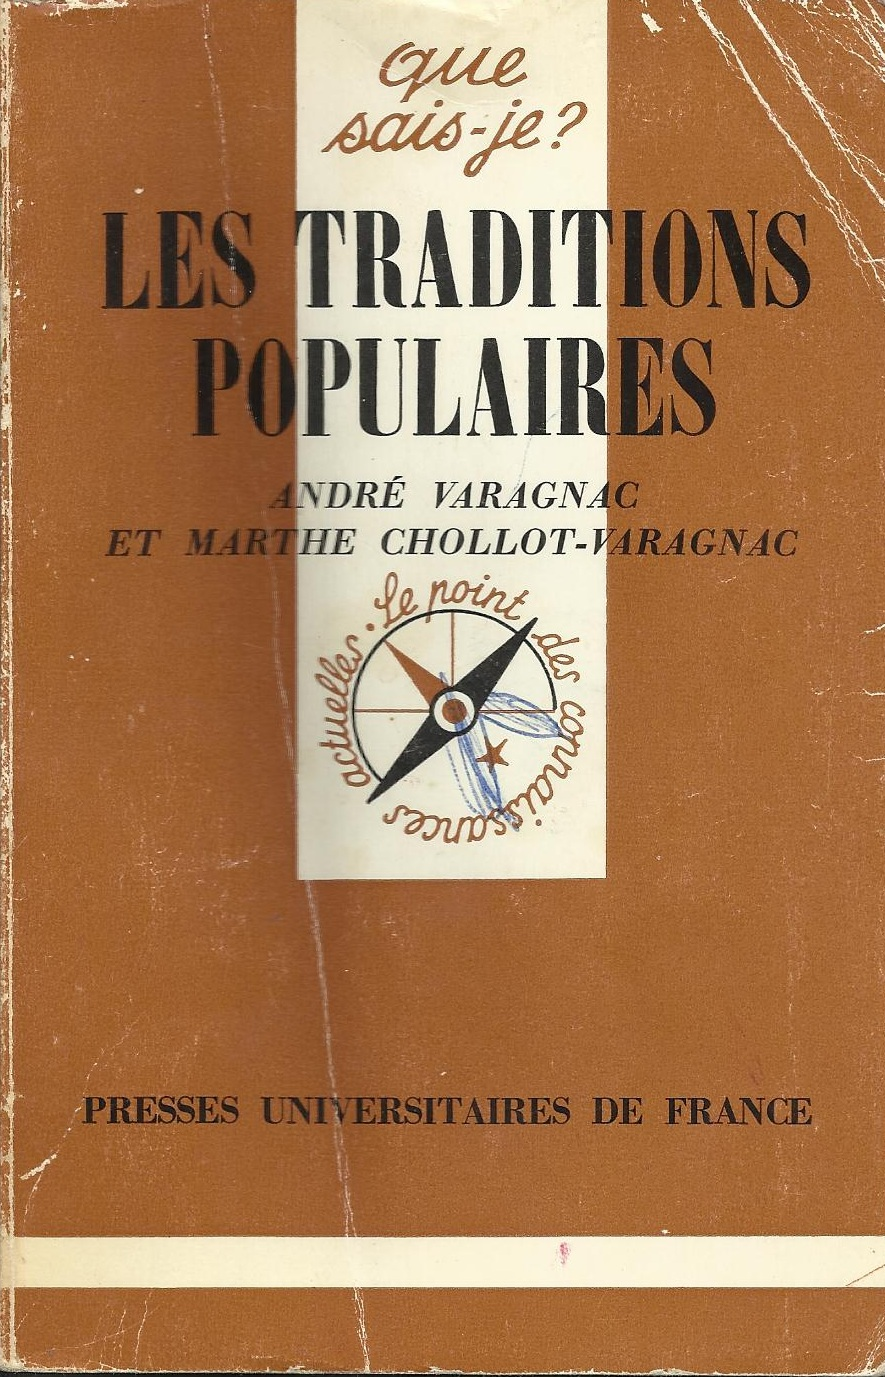 Les traditions populaires